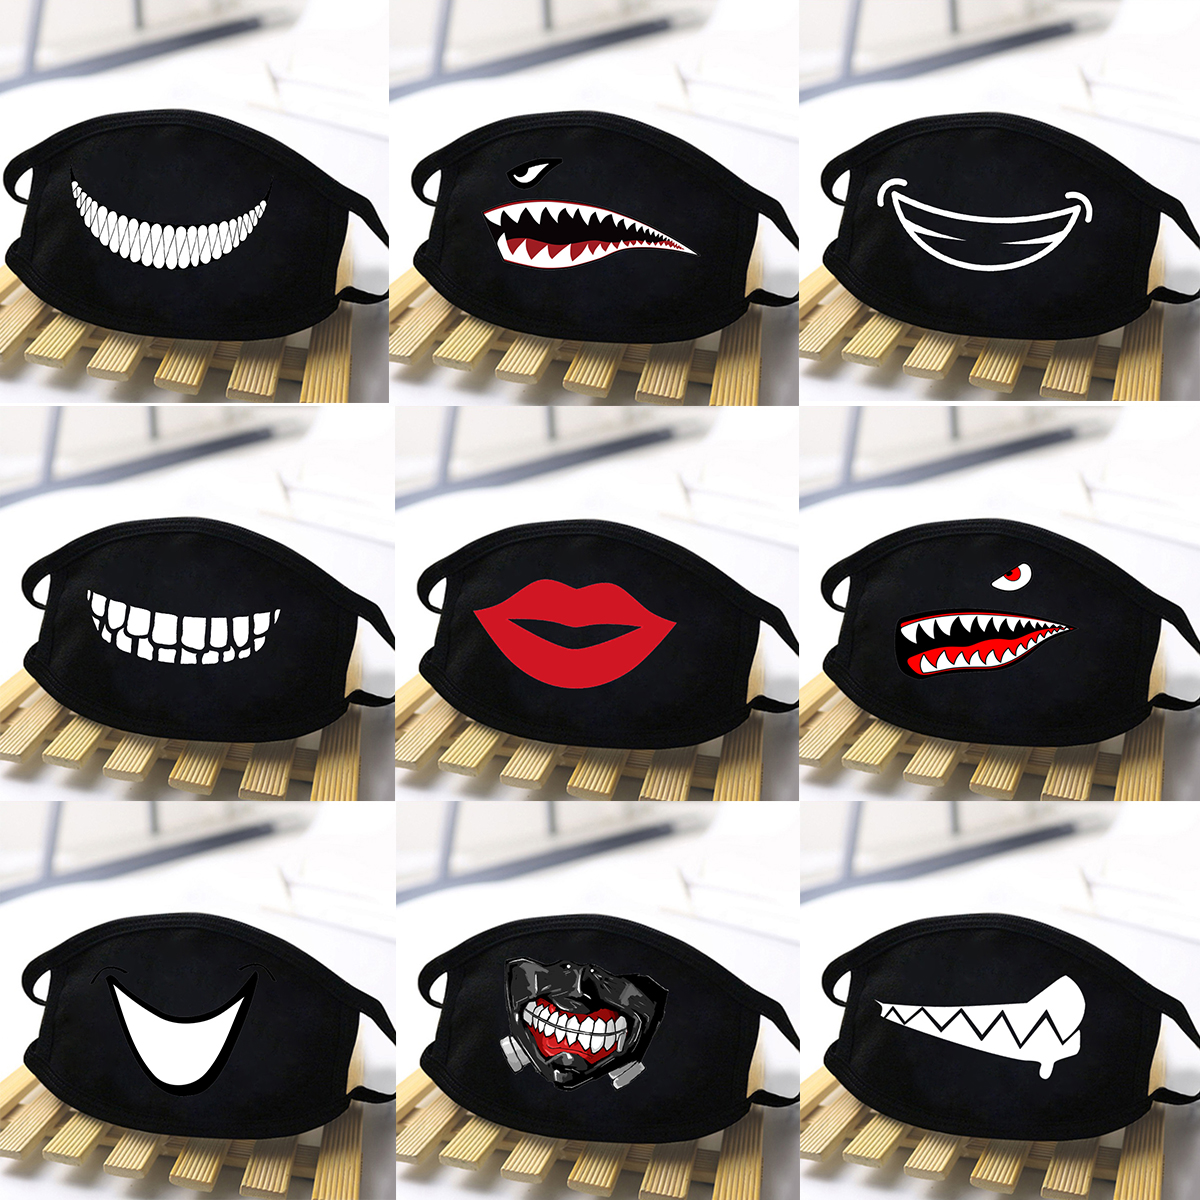 Uniex Cartoon Cute Print Masks Red Mouth Mask Anti-bacterial Dust Winter Mouth Mask Anti Haze Washable Reusable Dustproof Mask